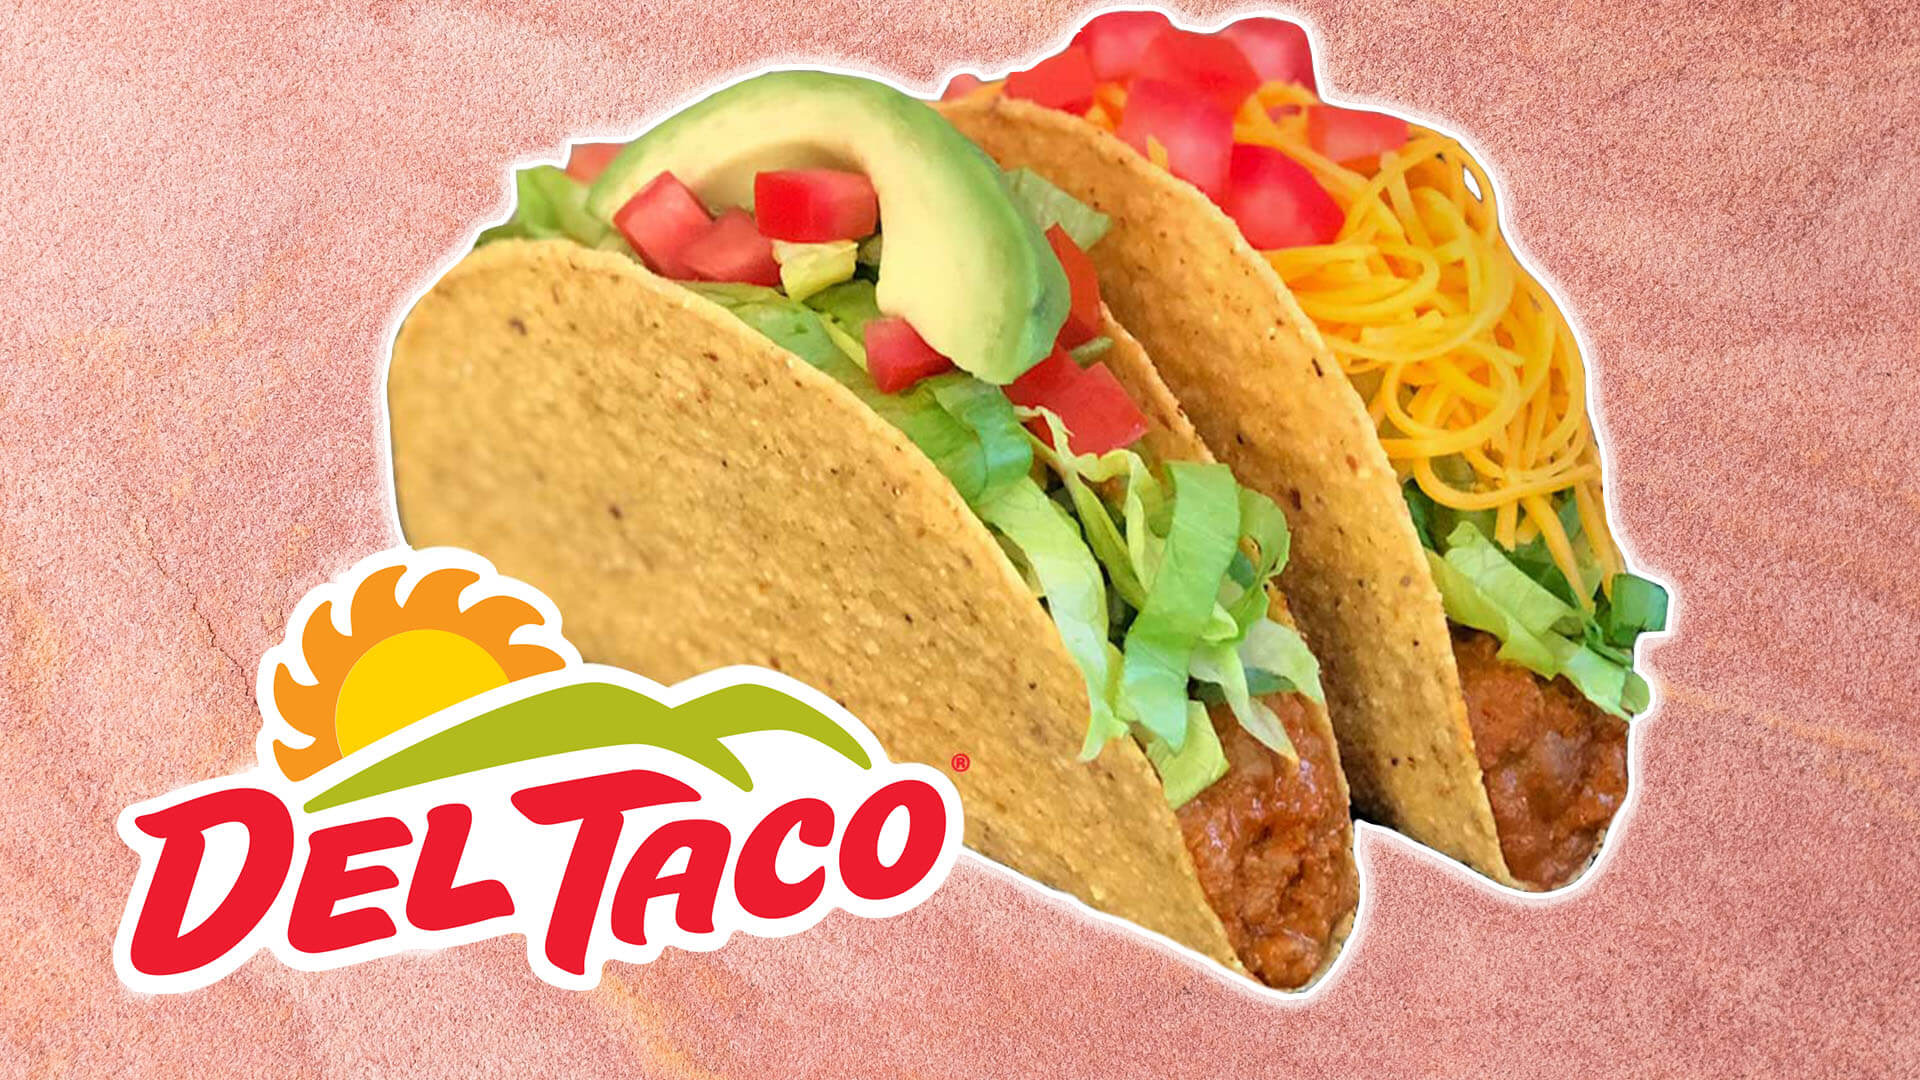 Vegan Beef Might Be Del Taco's Most Successful Launch Ever